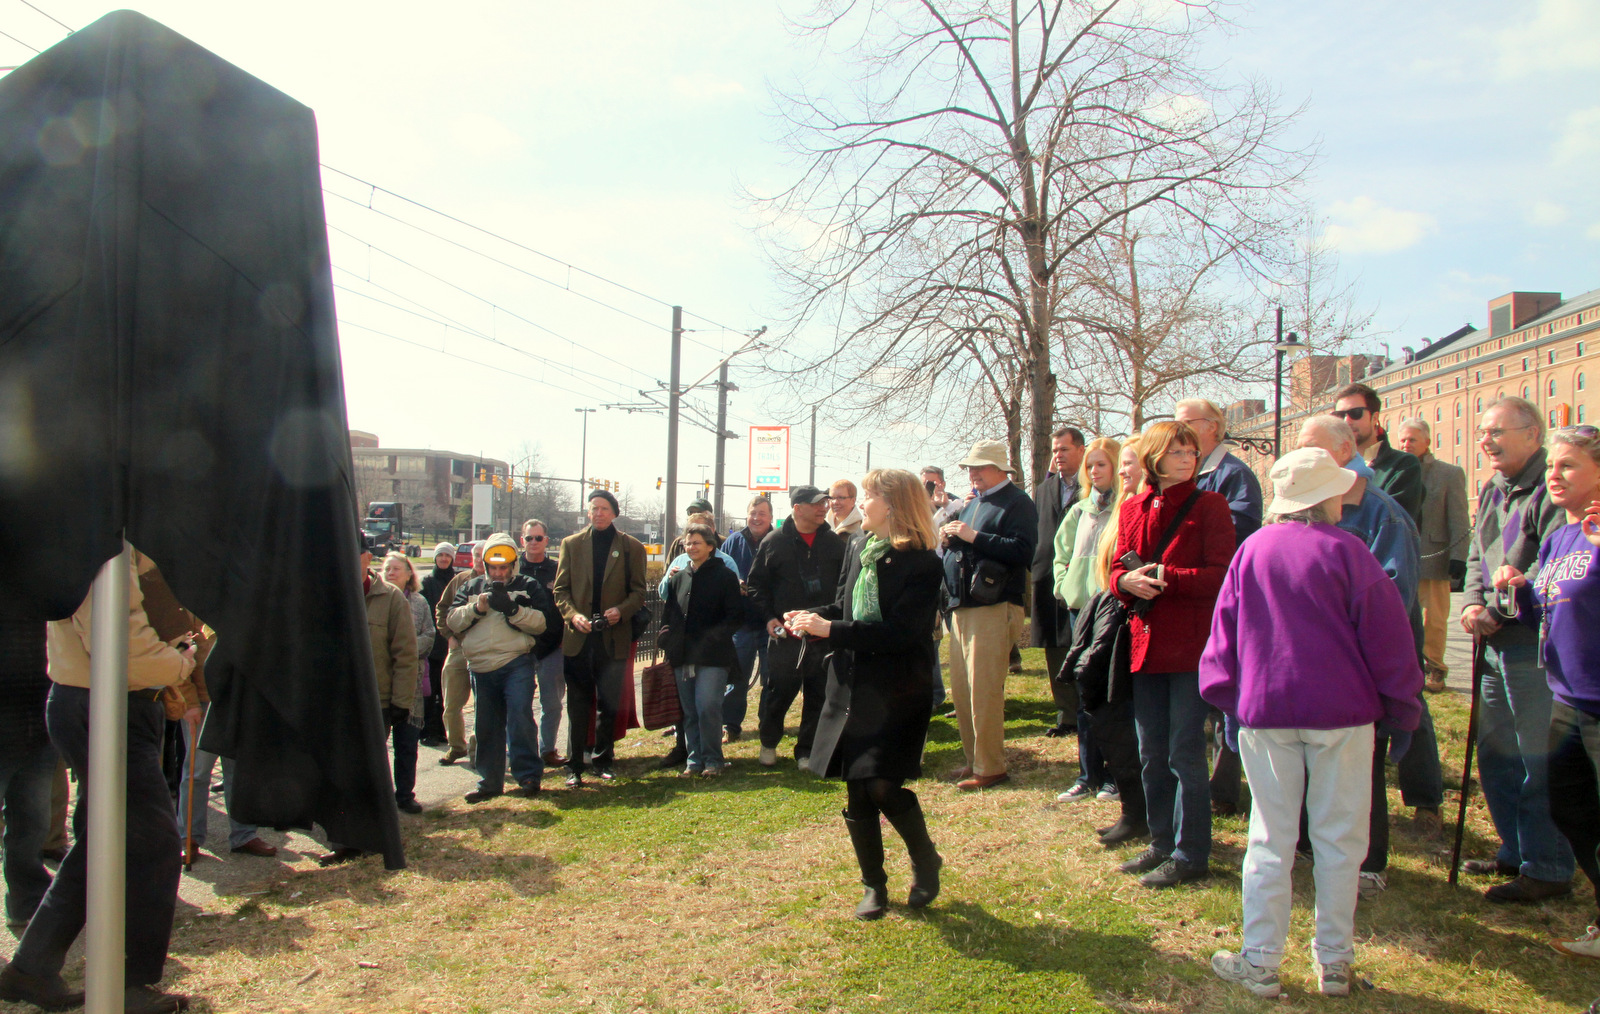 About 40 people came for the unveiling of the marker. (Photo by Fern Shen)